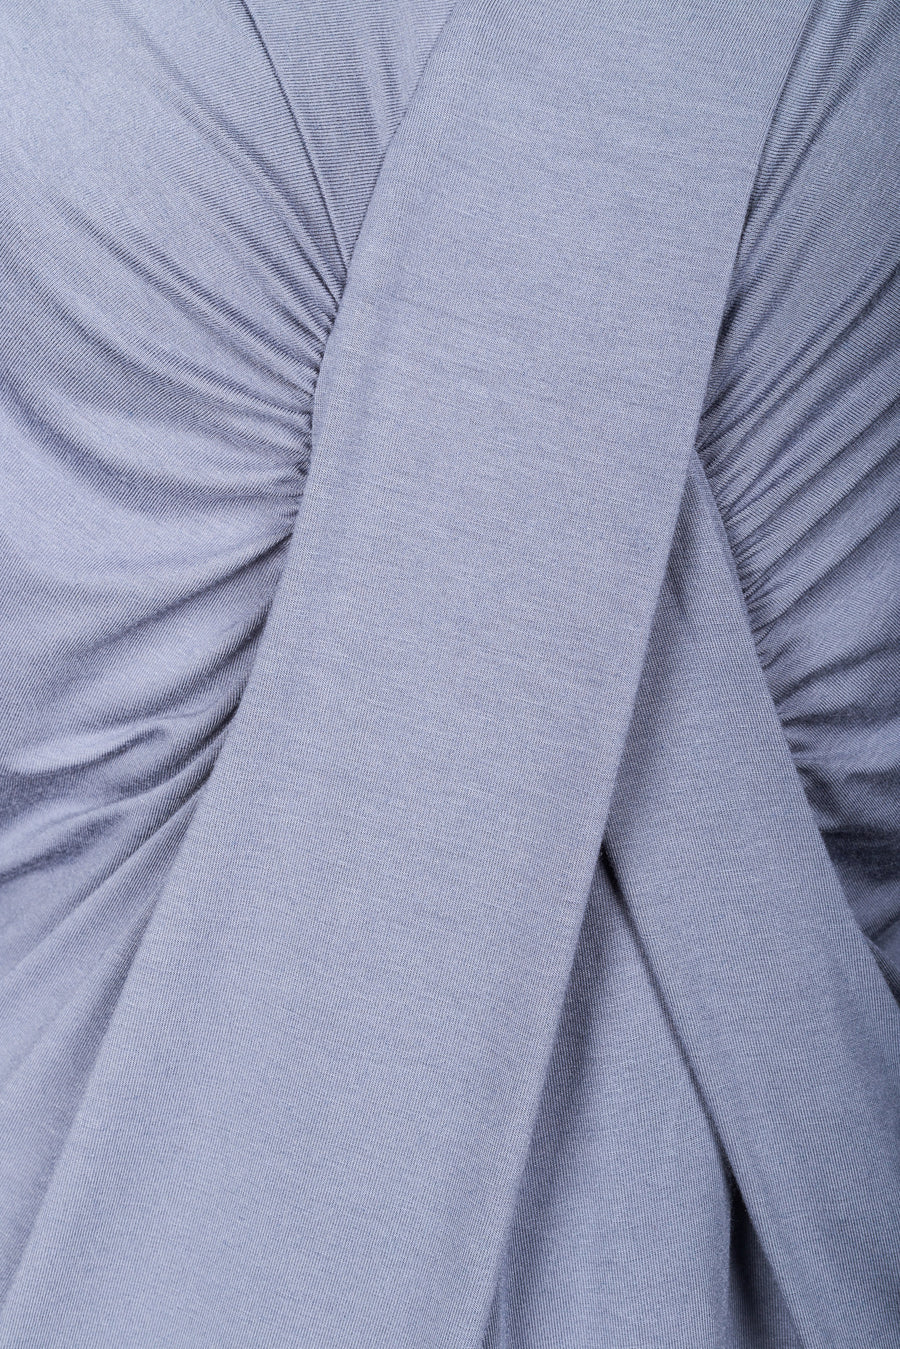 Viscose & cashmere blend dress in light blue